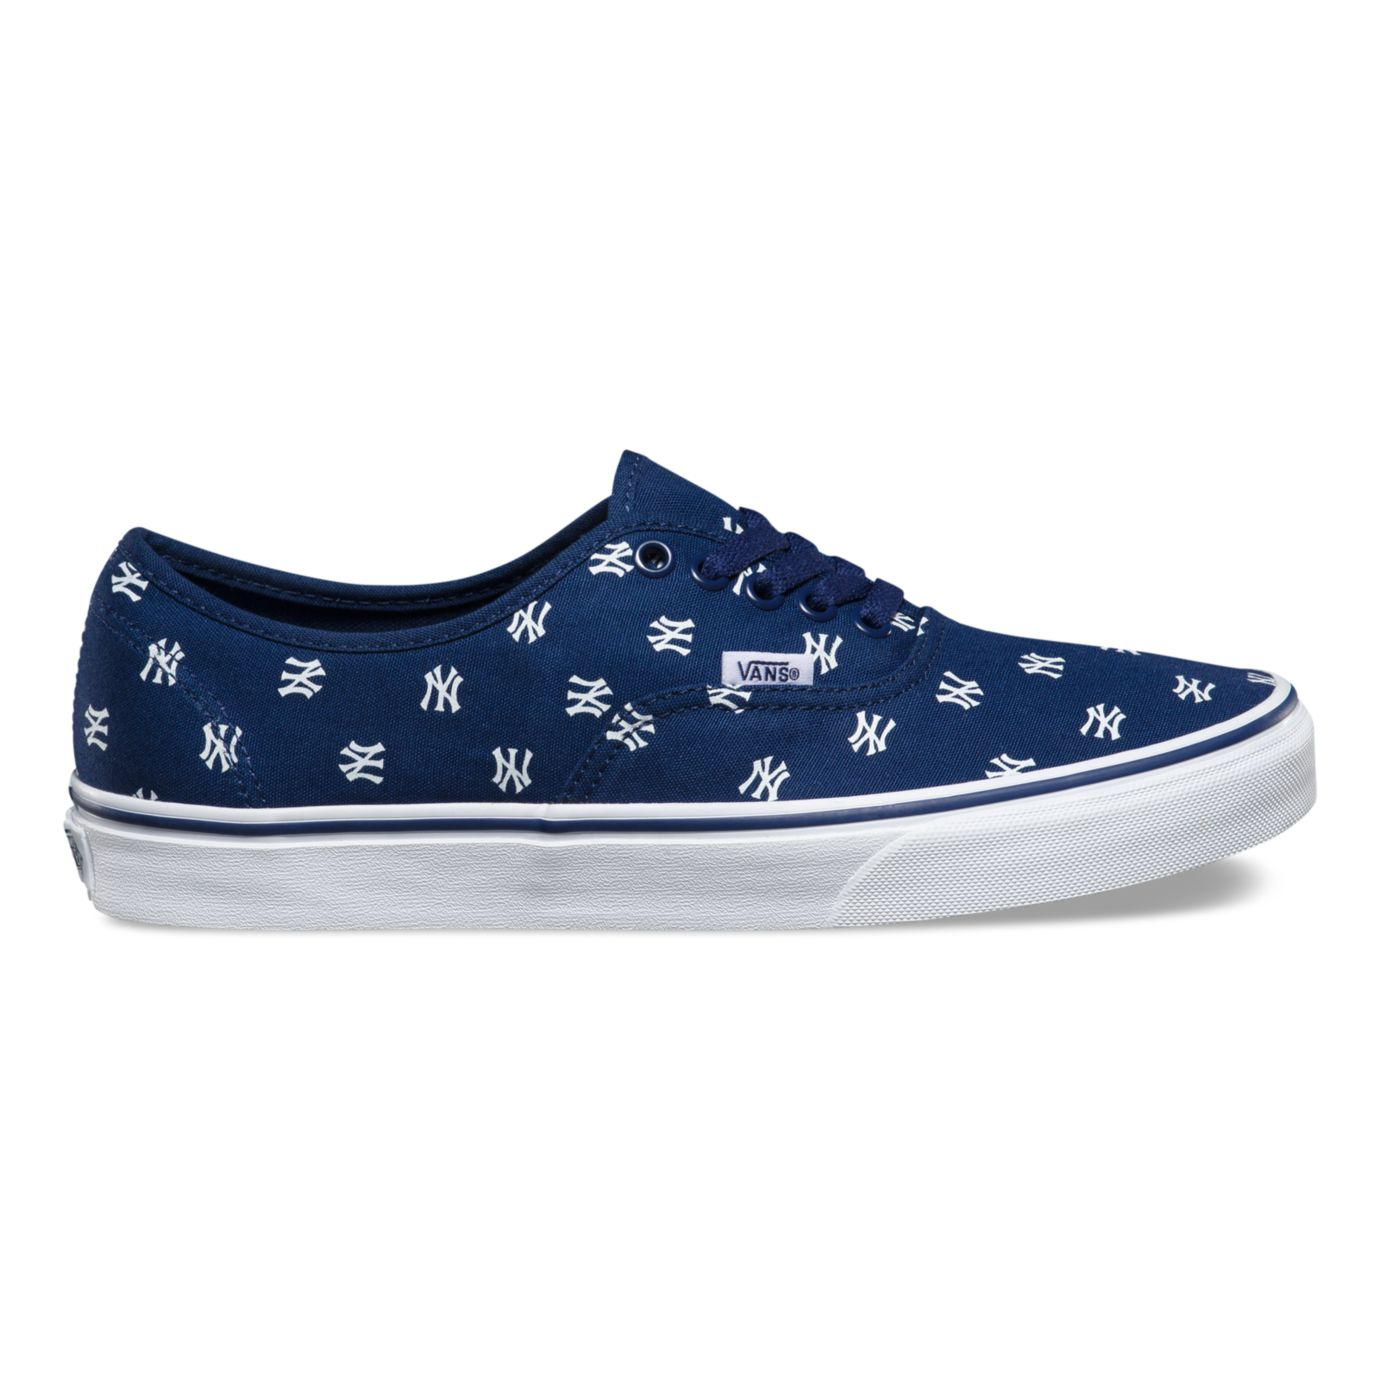 4cc82bbffb Vans x Major League Baseball